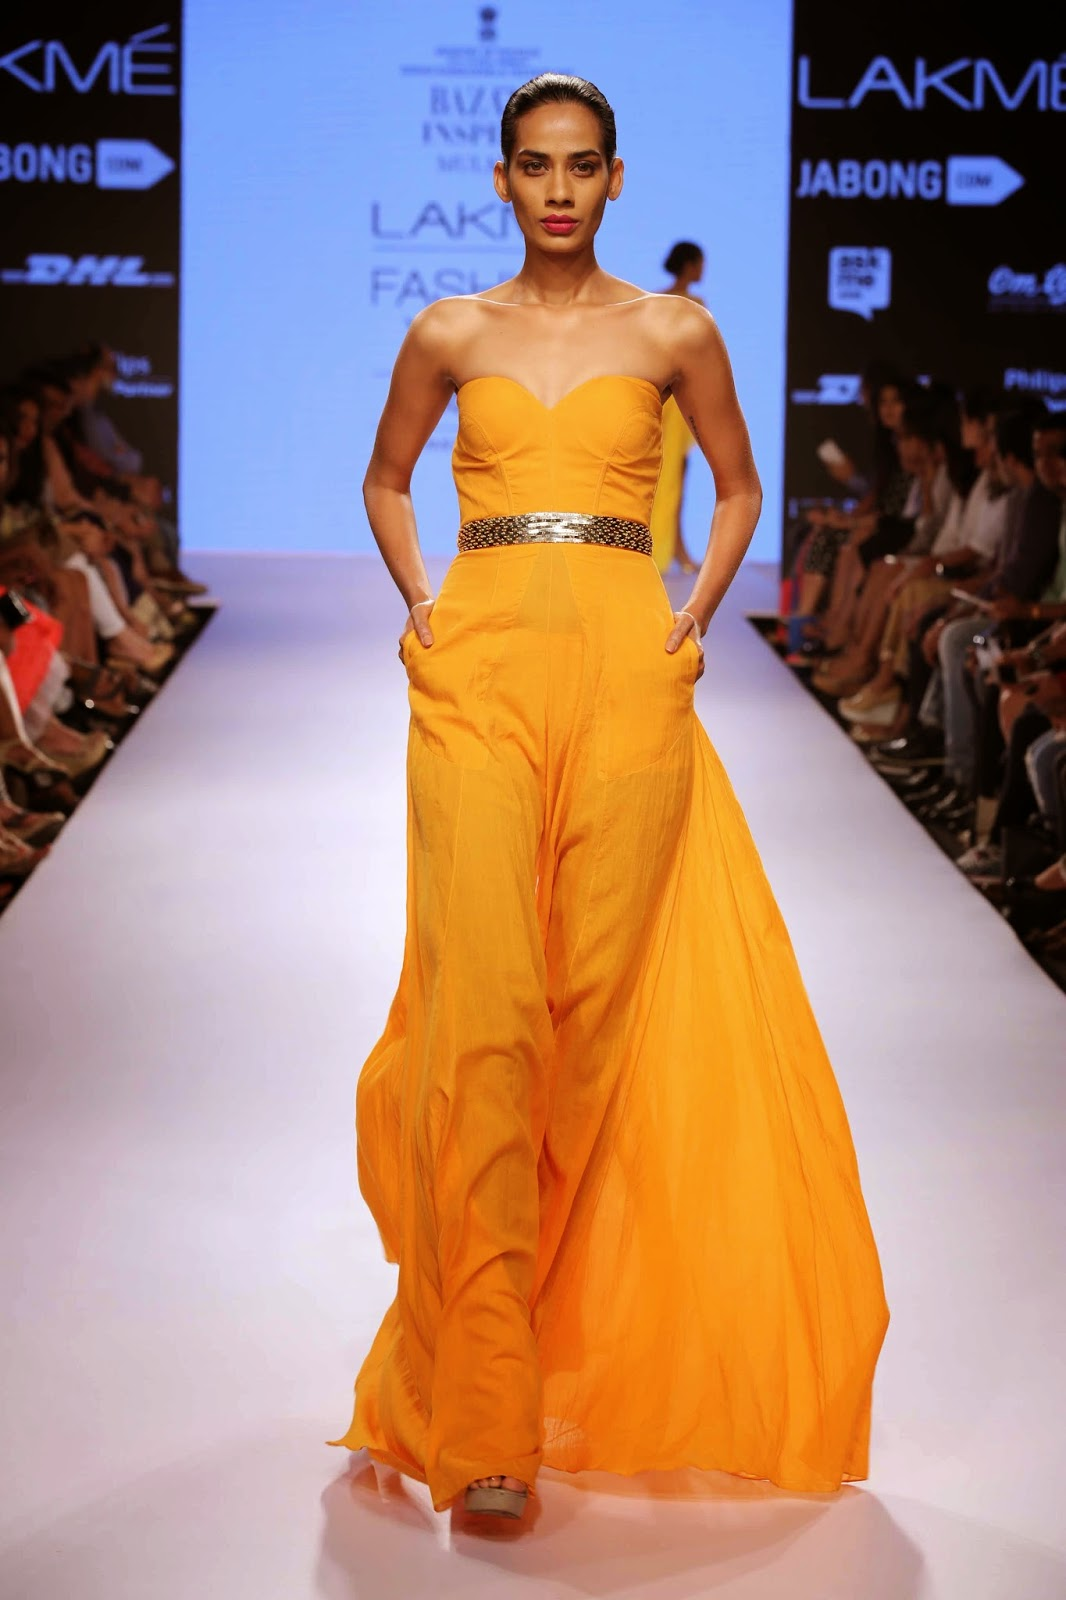 http://aquaintperspective.blogspot.in/, LIFW Day 2, Rakesh Agarwal